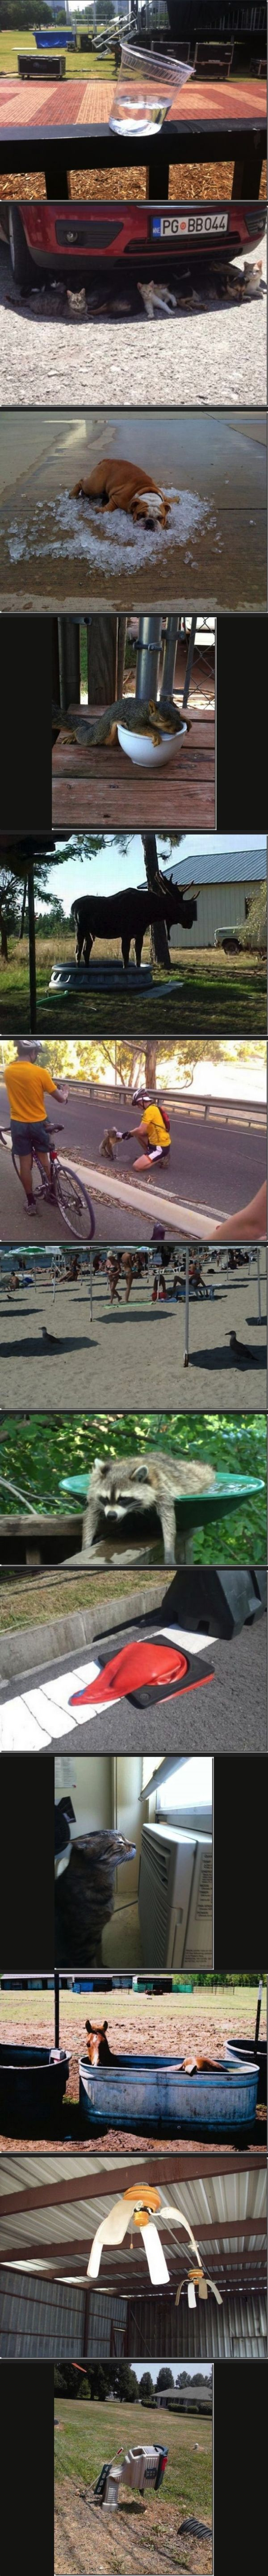 Funny Pictures of the week -71 pics- You Know It's Hot When ... (Compilation): Giggle, Funny Pictures, Summer, Funny Stuff, Humor, Smile, Animal